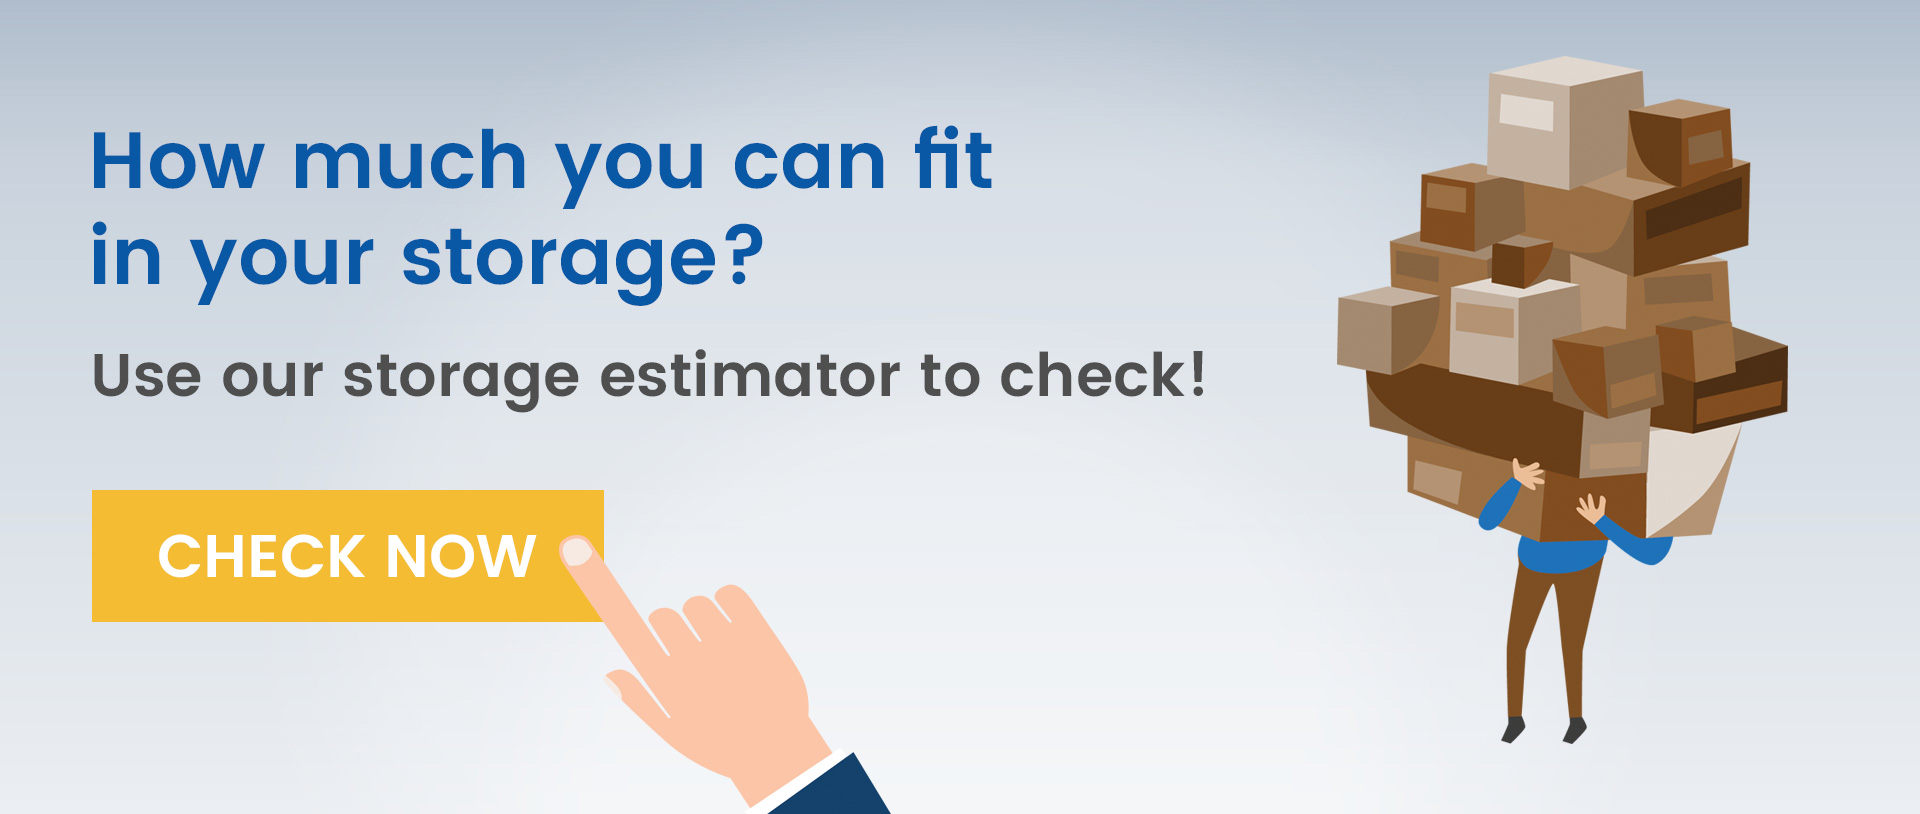 storage estimator